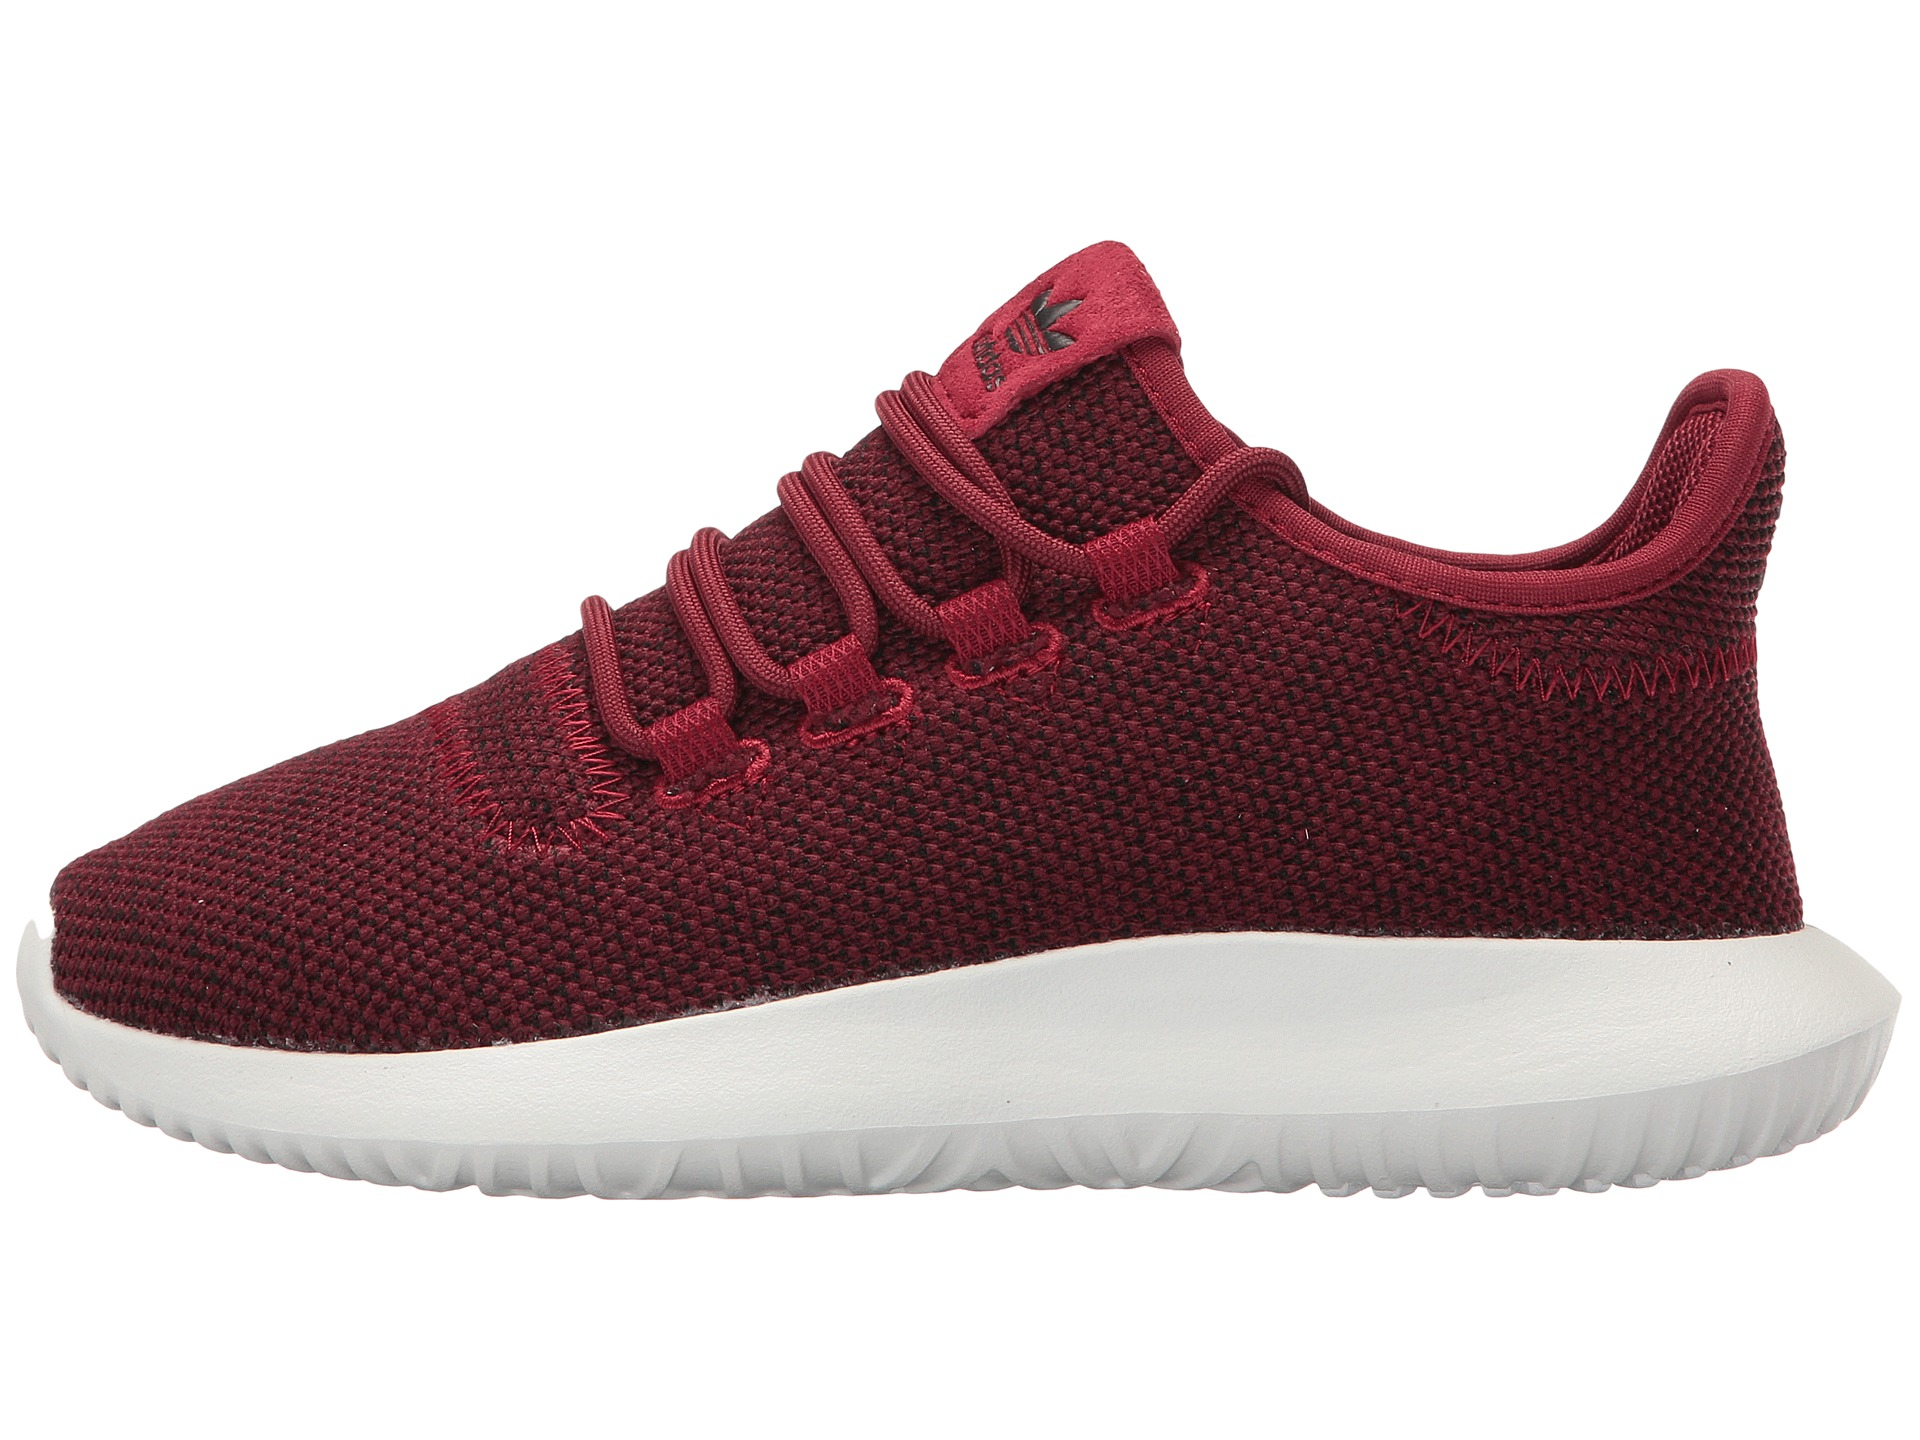 Buy Adidas Tubular Nova Compare Prices on idealo.co.uk